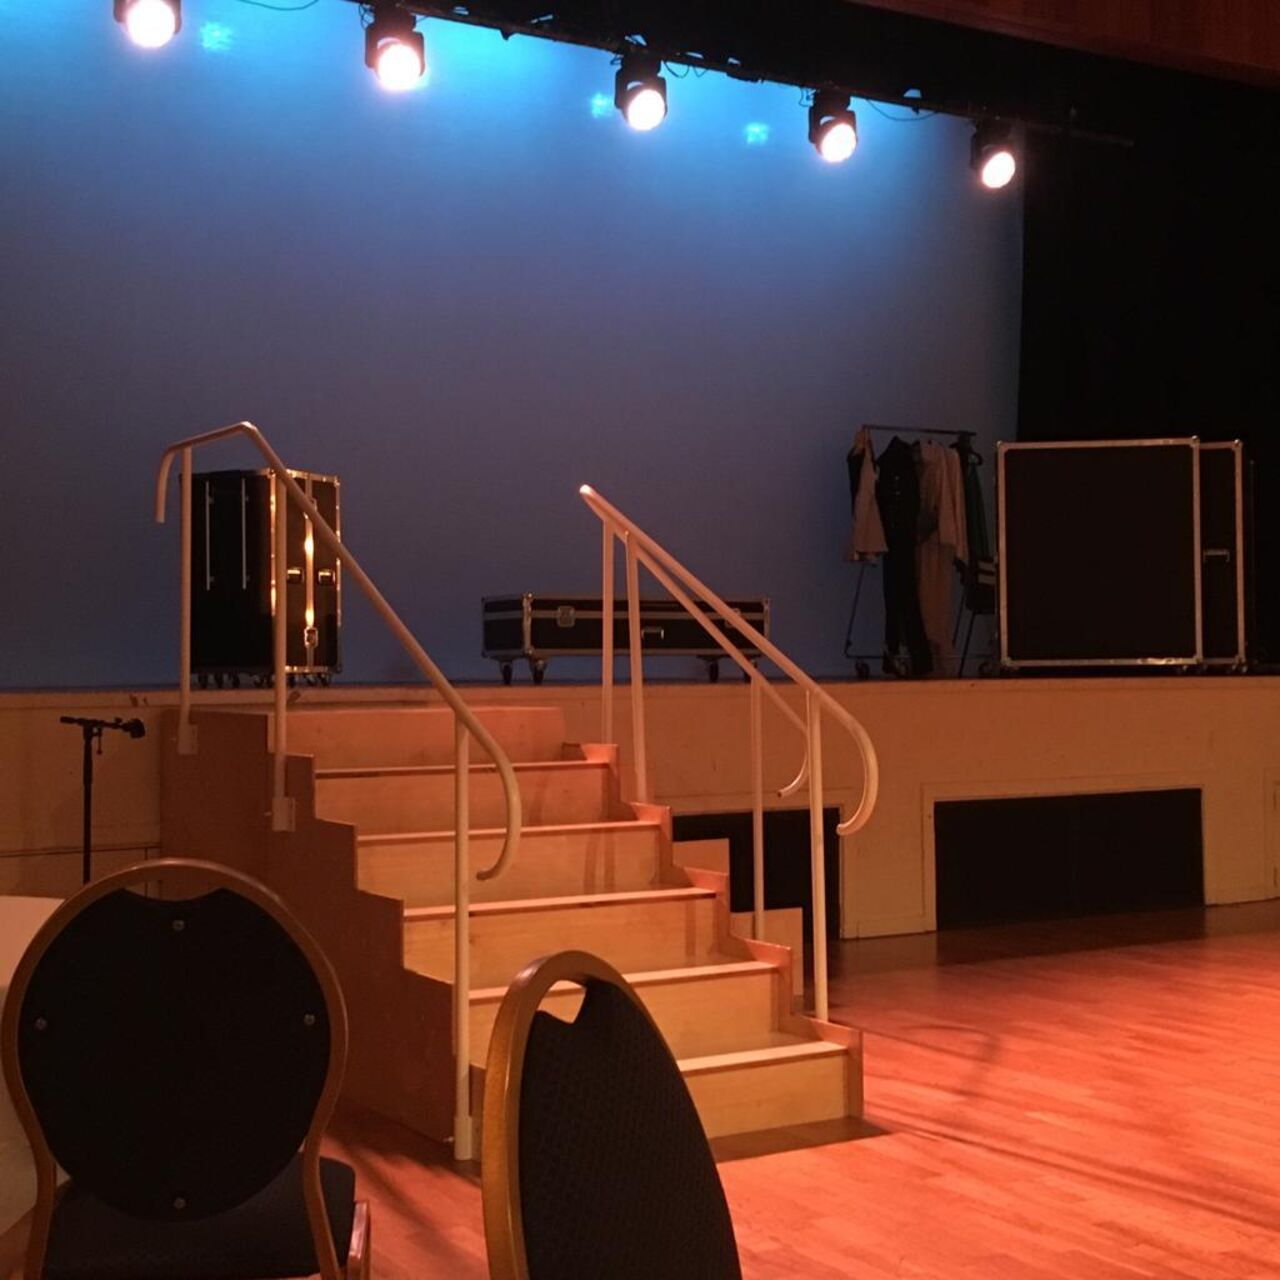 A stage with several flight cases and a clothes rail on it with lights facing out.  A set of wooden stairs leads from the stage to the wooden floor. The stairs have white handrails at either side which curves down at each end. On the right hand side there is a glimpse of a handrail from a second set of stairs leading down from the same place as the first.  In the foreground are two dining chairs.